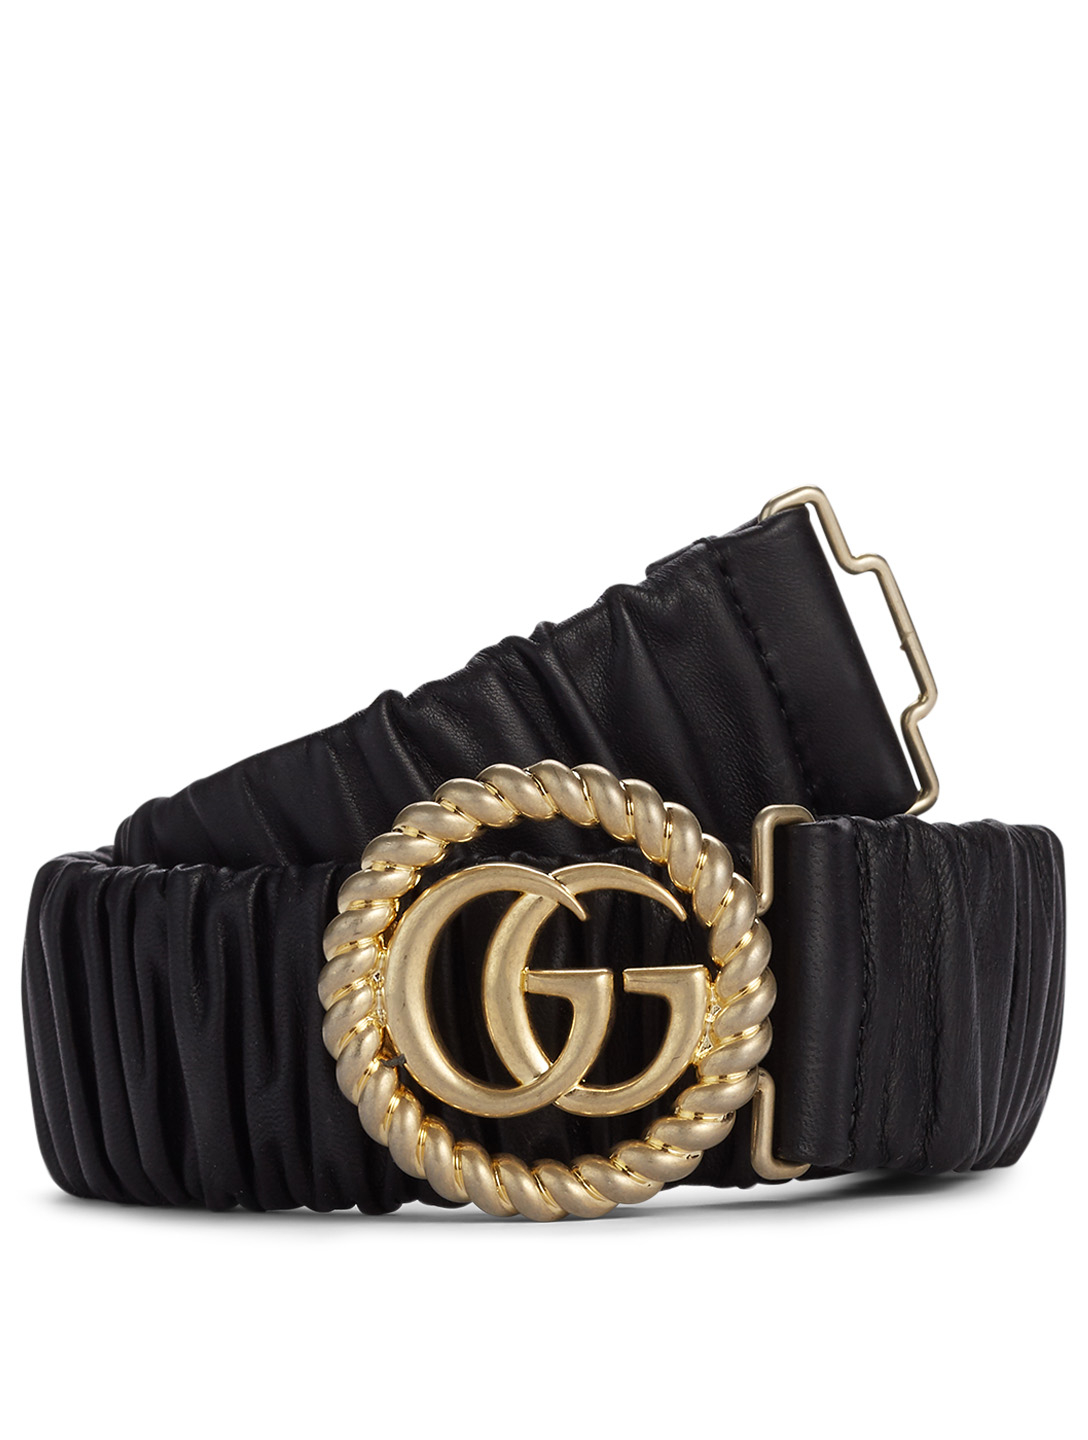 GUCCI Elastic Leather Belt With Double G Buckle Women's Black